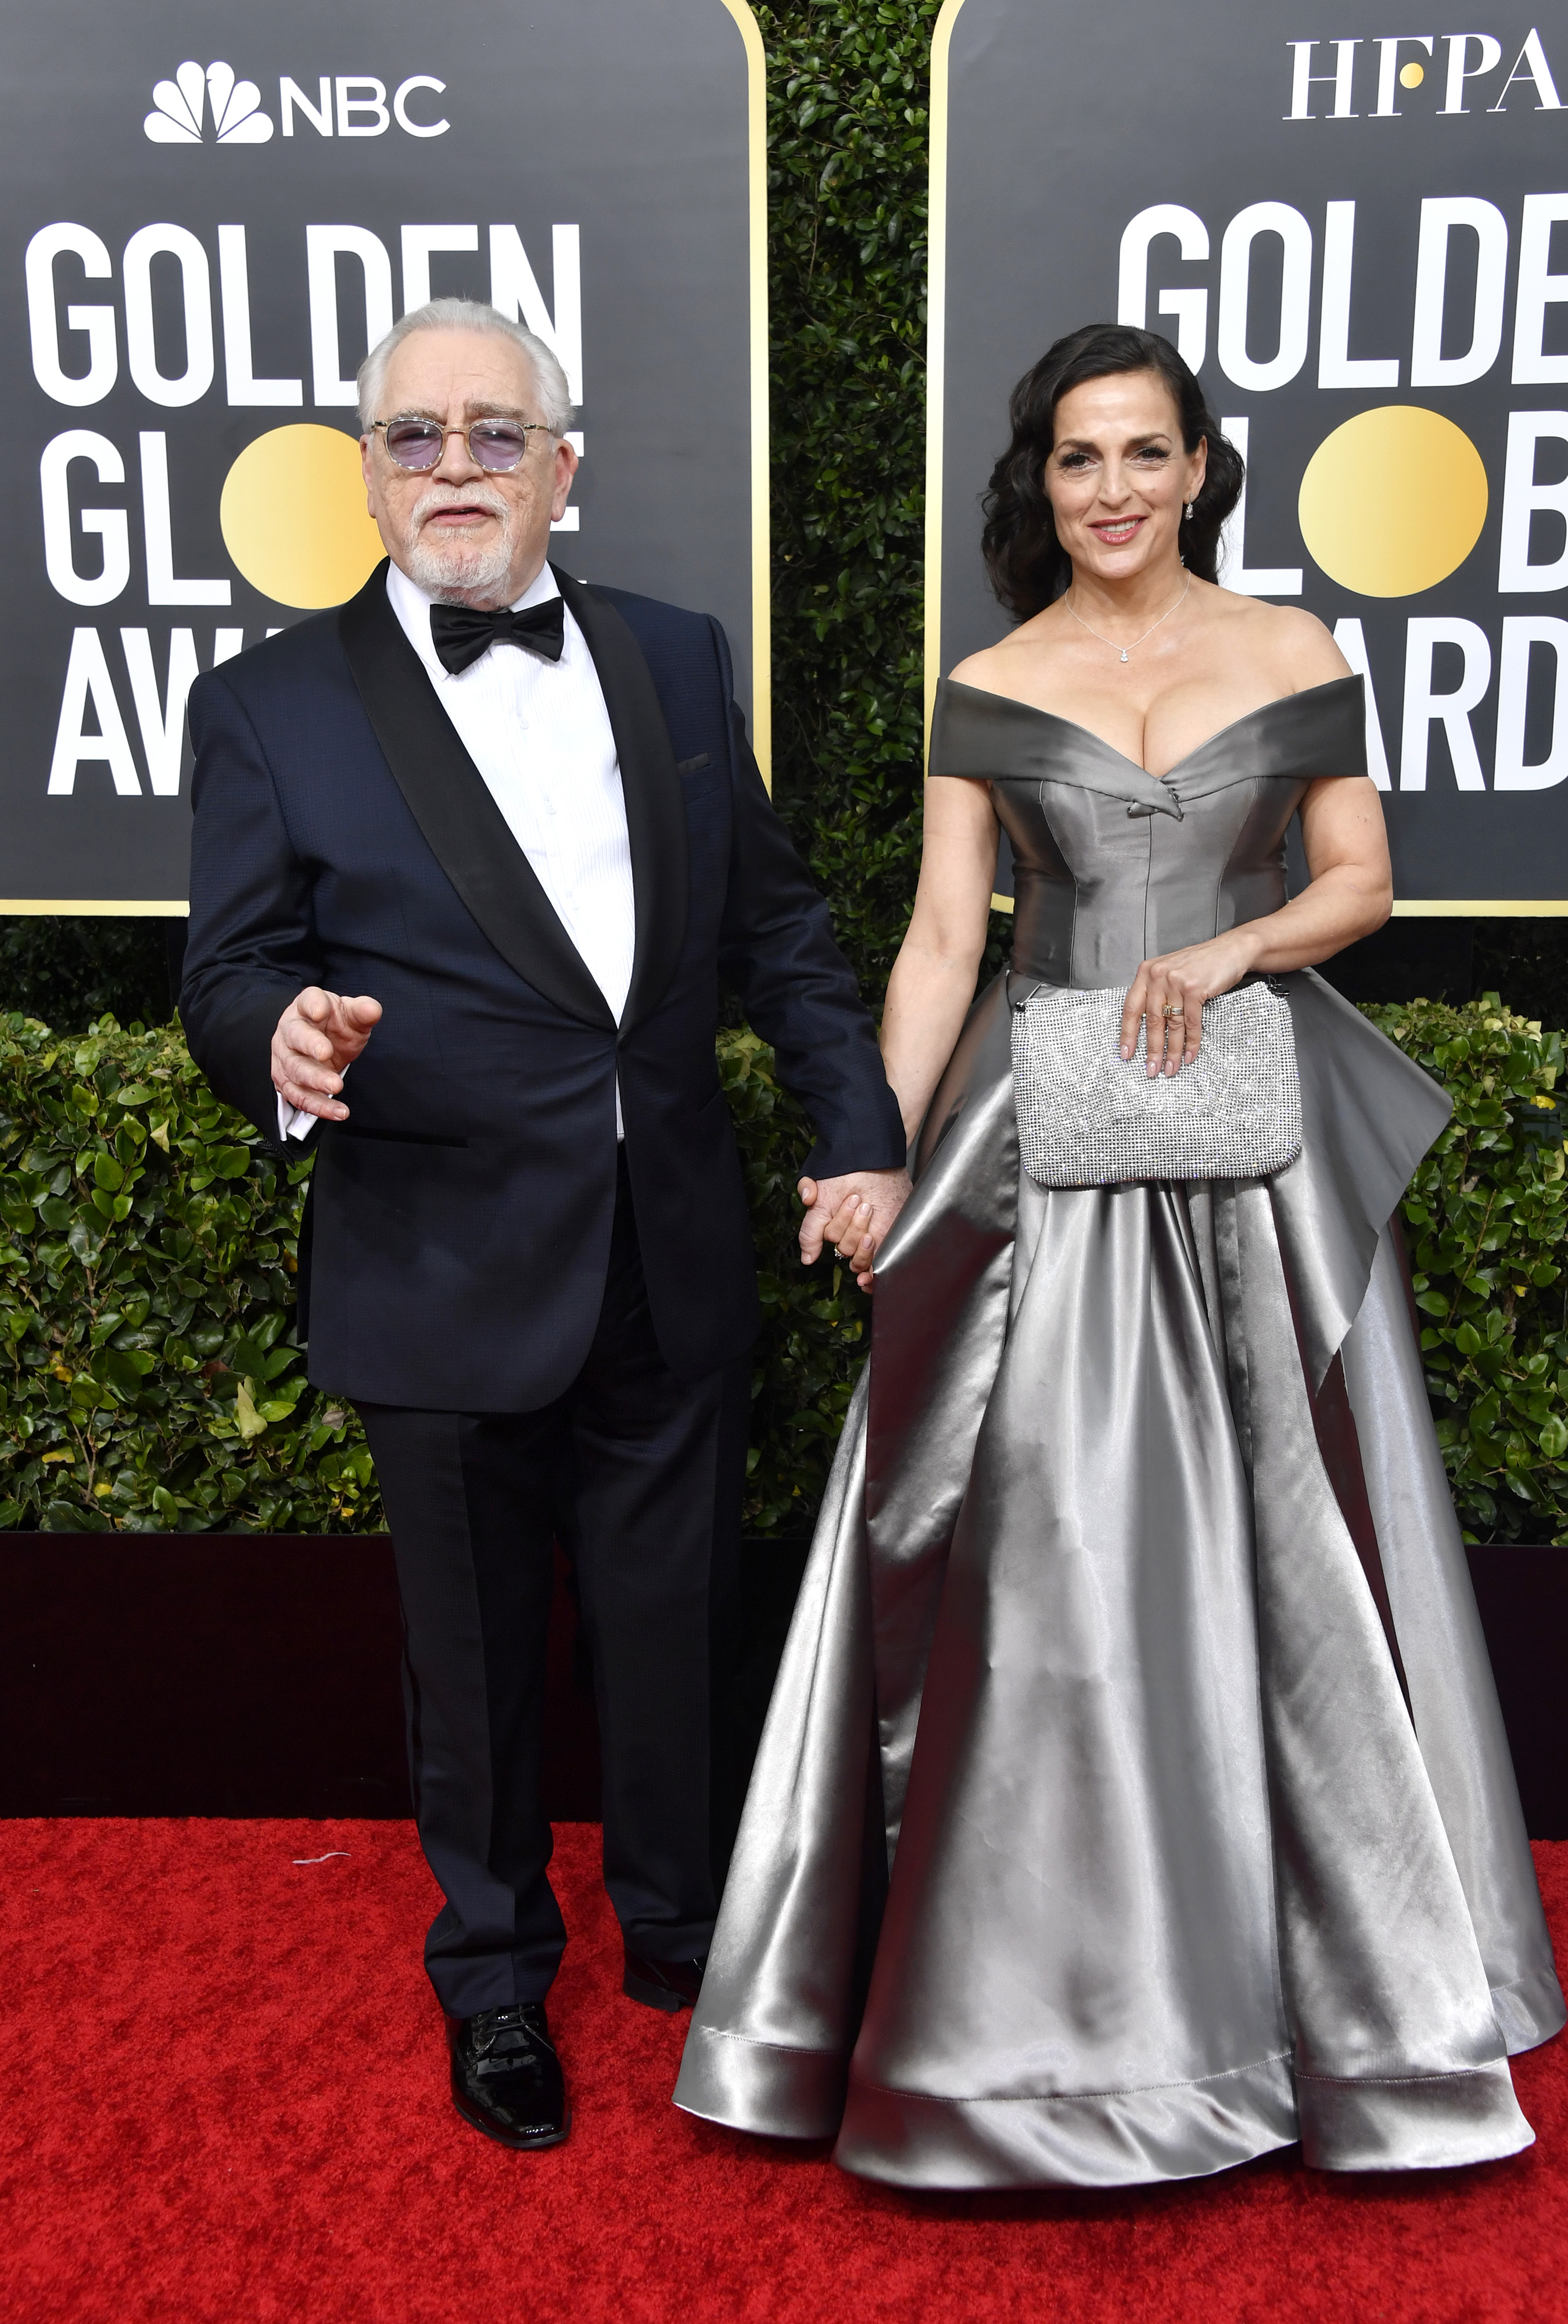 BEVERLY HILLS, CALIFORNIA - JANUARY 05: (L-R) Brian Cox and Nicole Ansari-Cox attend the 77th Annual Golden Globe Awards at The Beverly Hilton Hotel on January 05, 2020 in Beverly Hills, California. (Photo by Frazer Harrison/Getty Images)